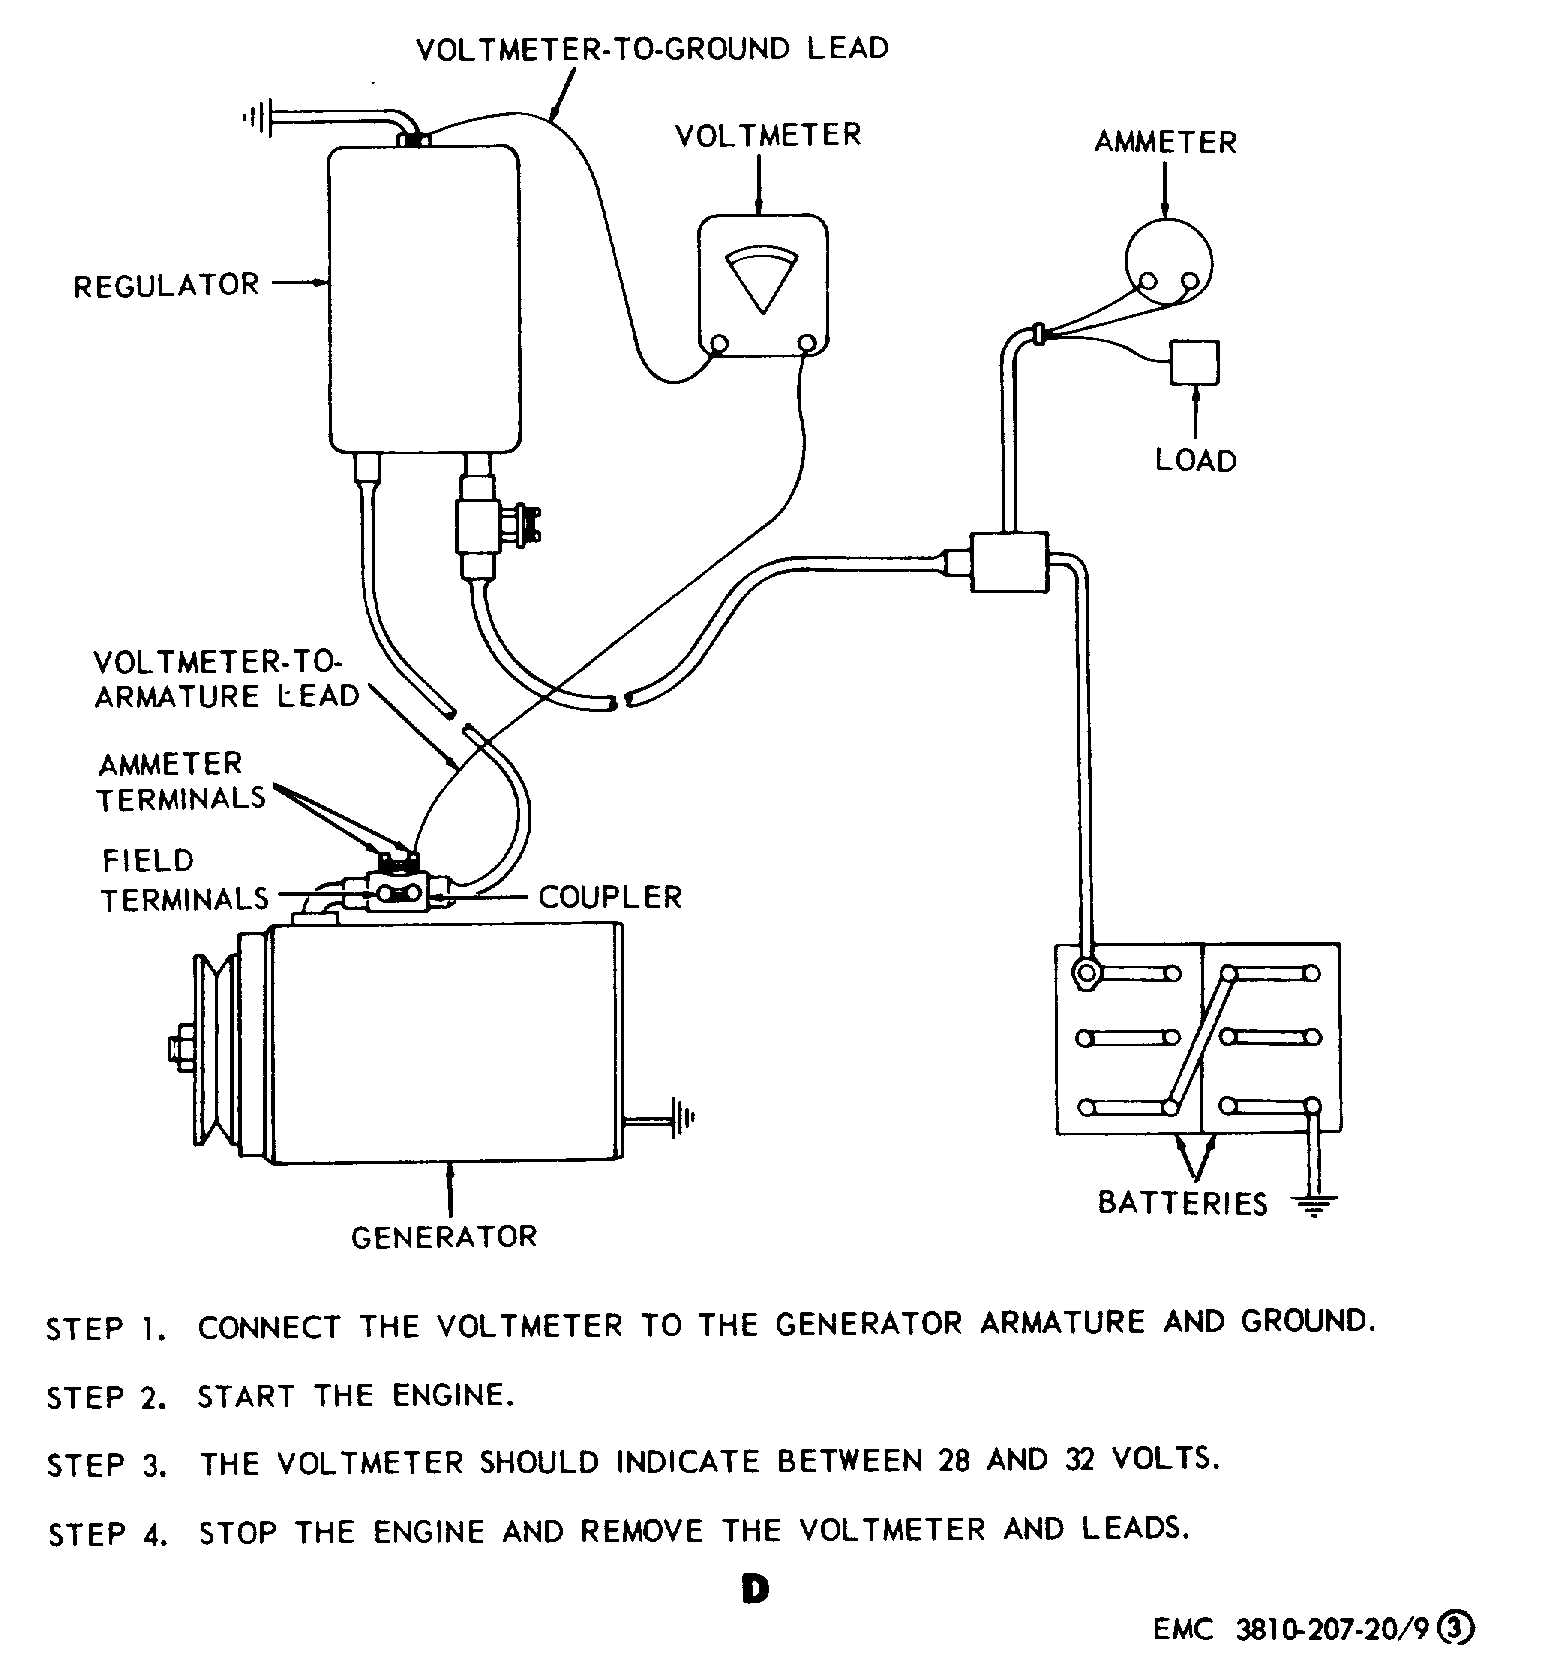 Generator regulator removal adjustment and test wiring diagram - cont - TM-5-3810-207-20_65